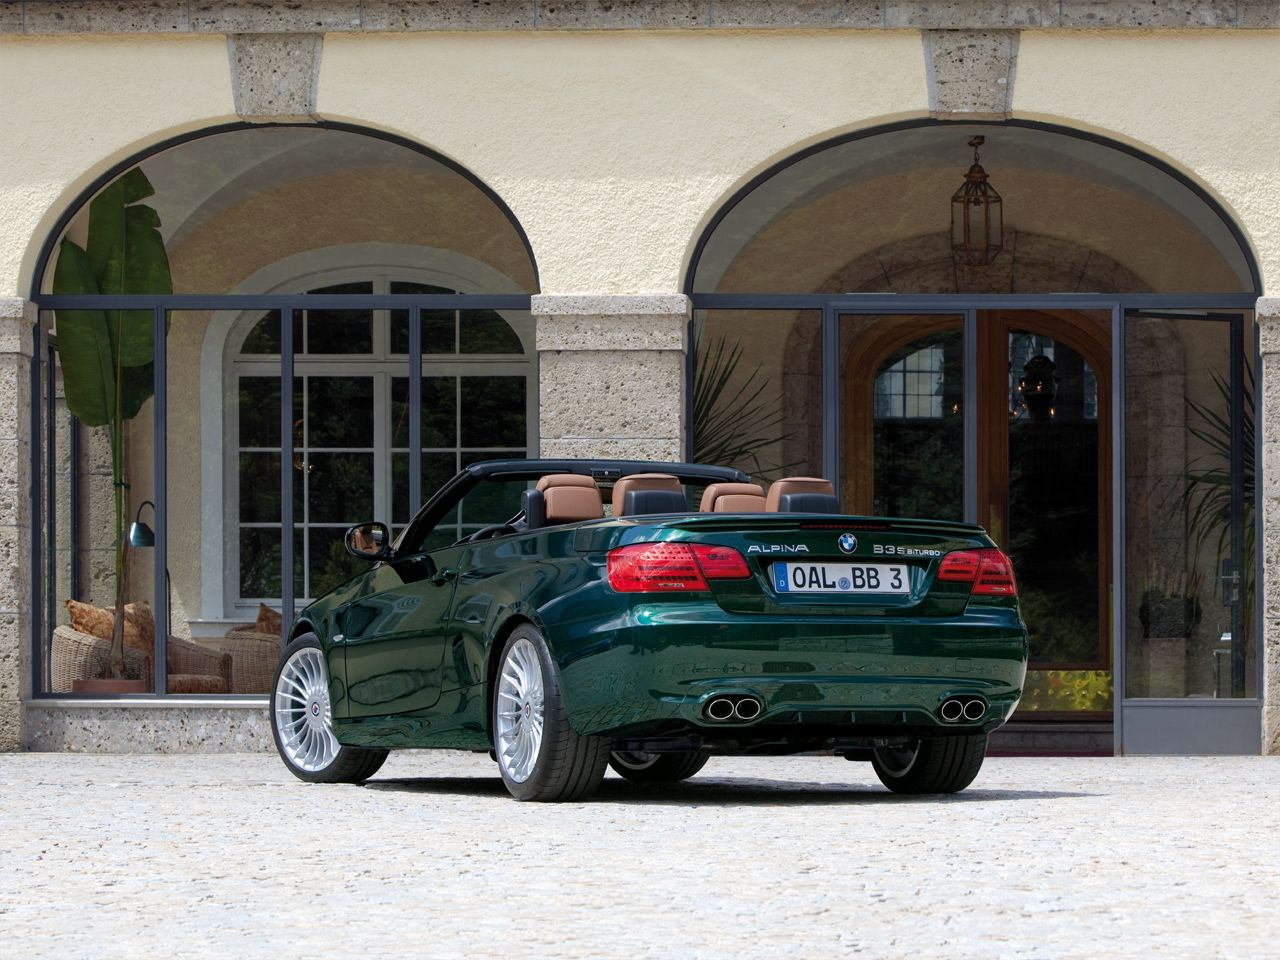 e93 alpina bmw b3 biturbo cabrio bmw 3 series pinterest. Black Bedroom Furniture Sets. Home Design Ideas